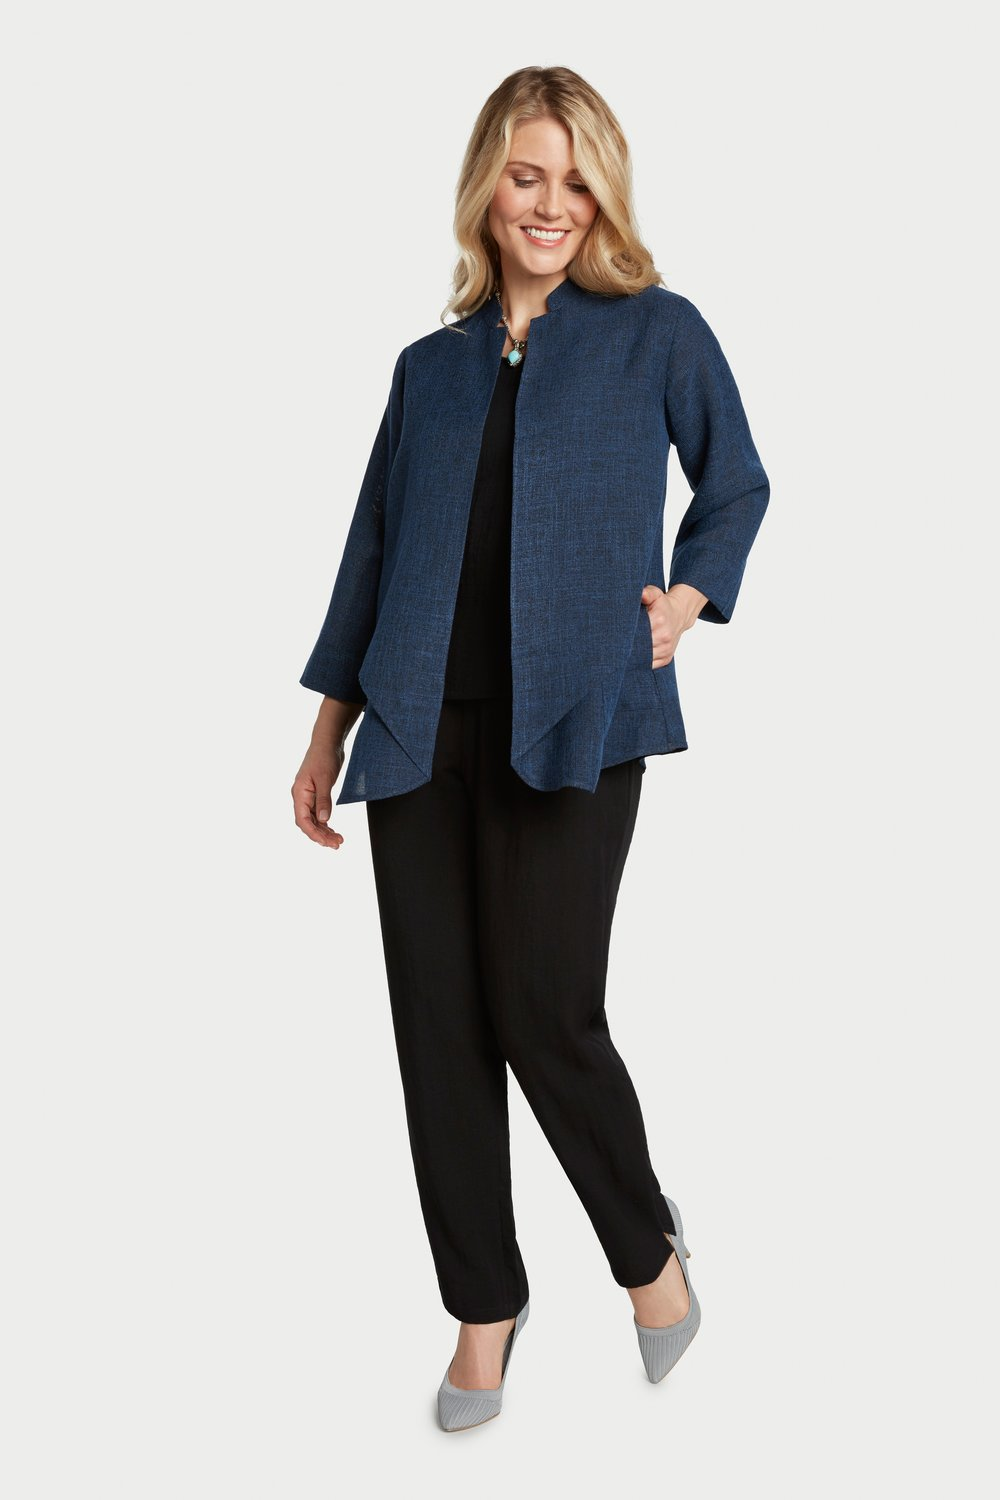 AA7137 - Waterfall Jacket Black/Navy Heathered - JC29